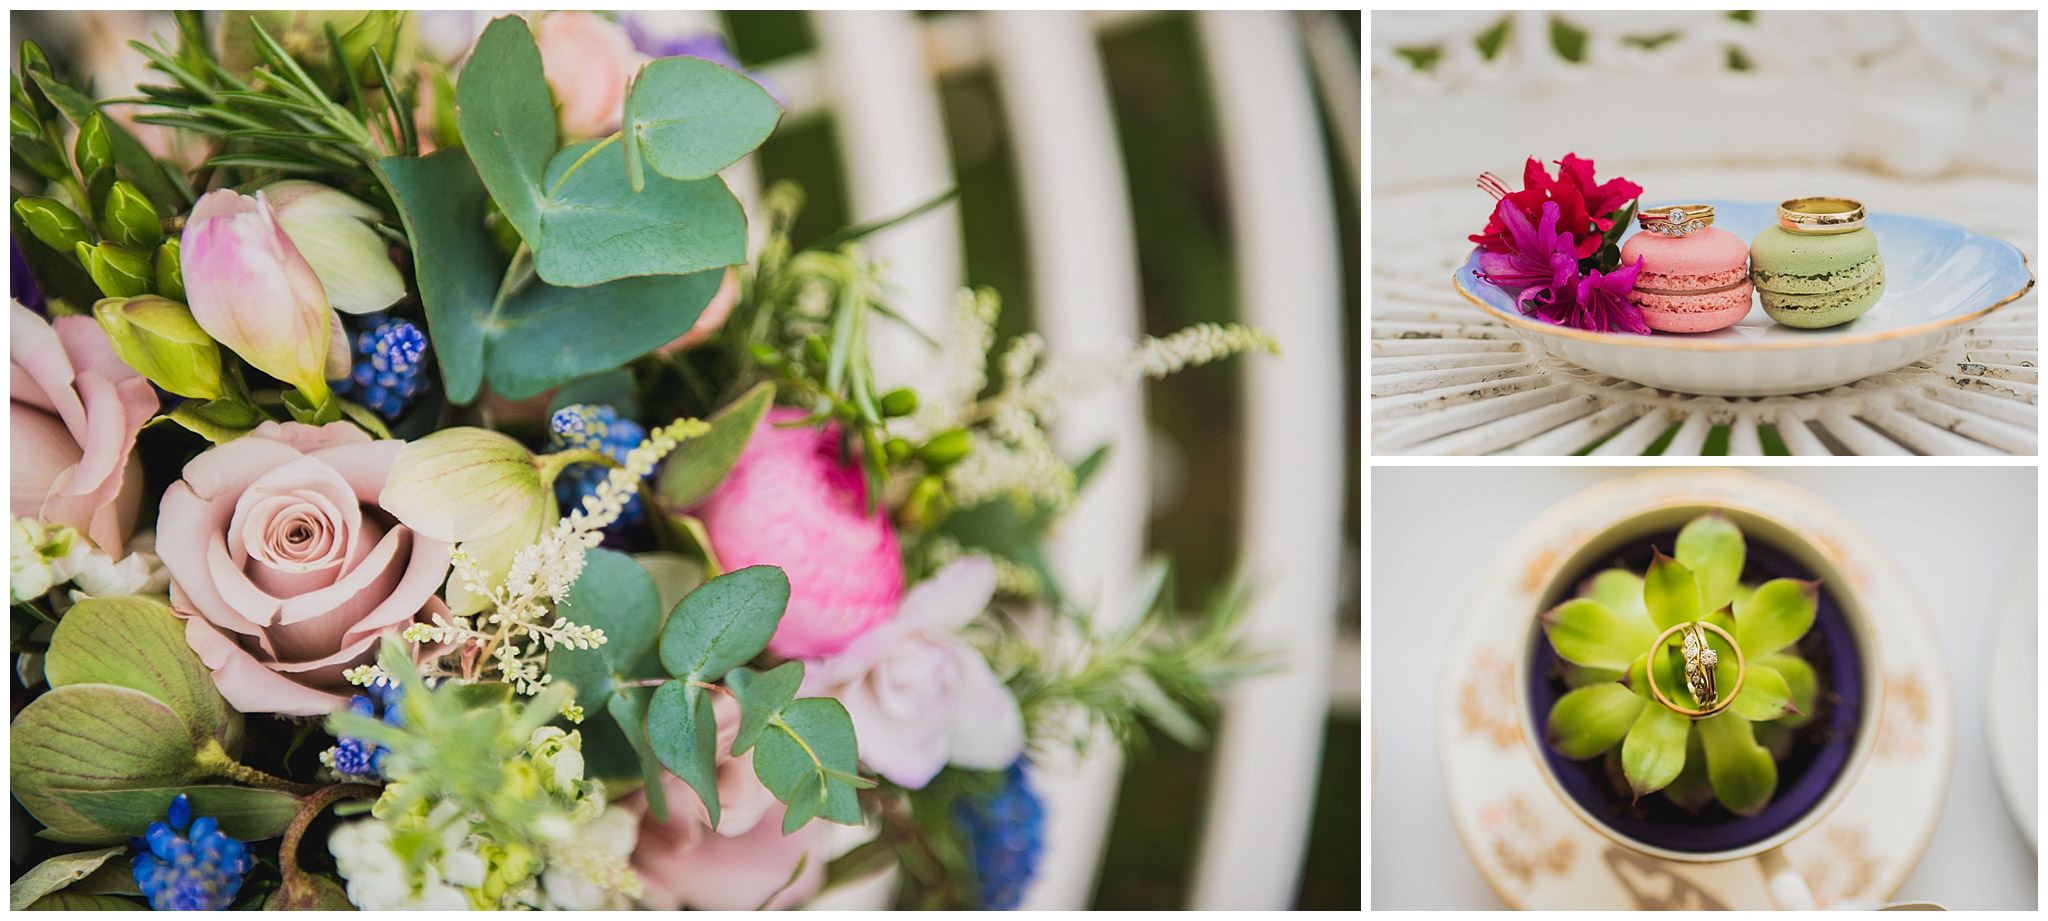 Sarah-&-Dan-The-Old-Vicarage-Wedding-Venue-Dorset-Photographer-35